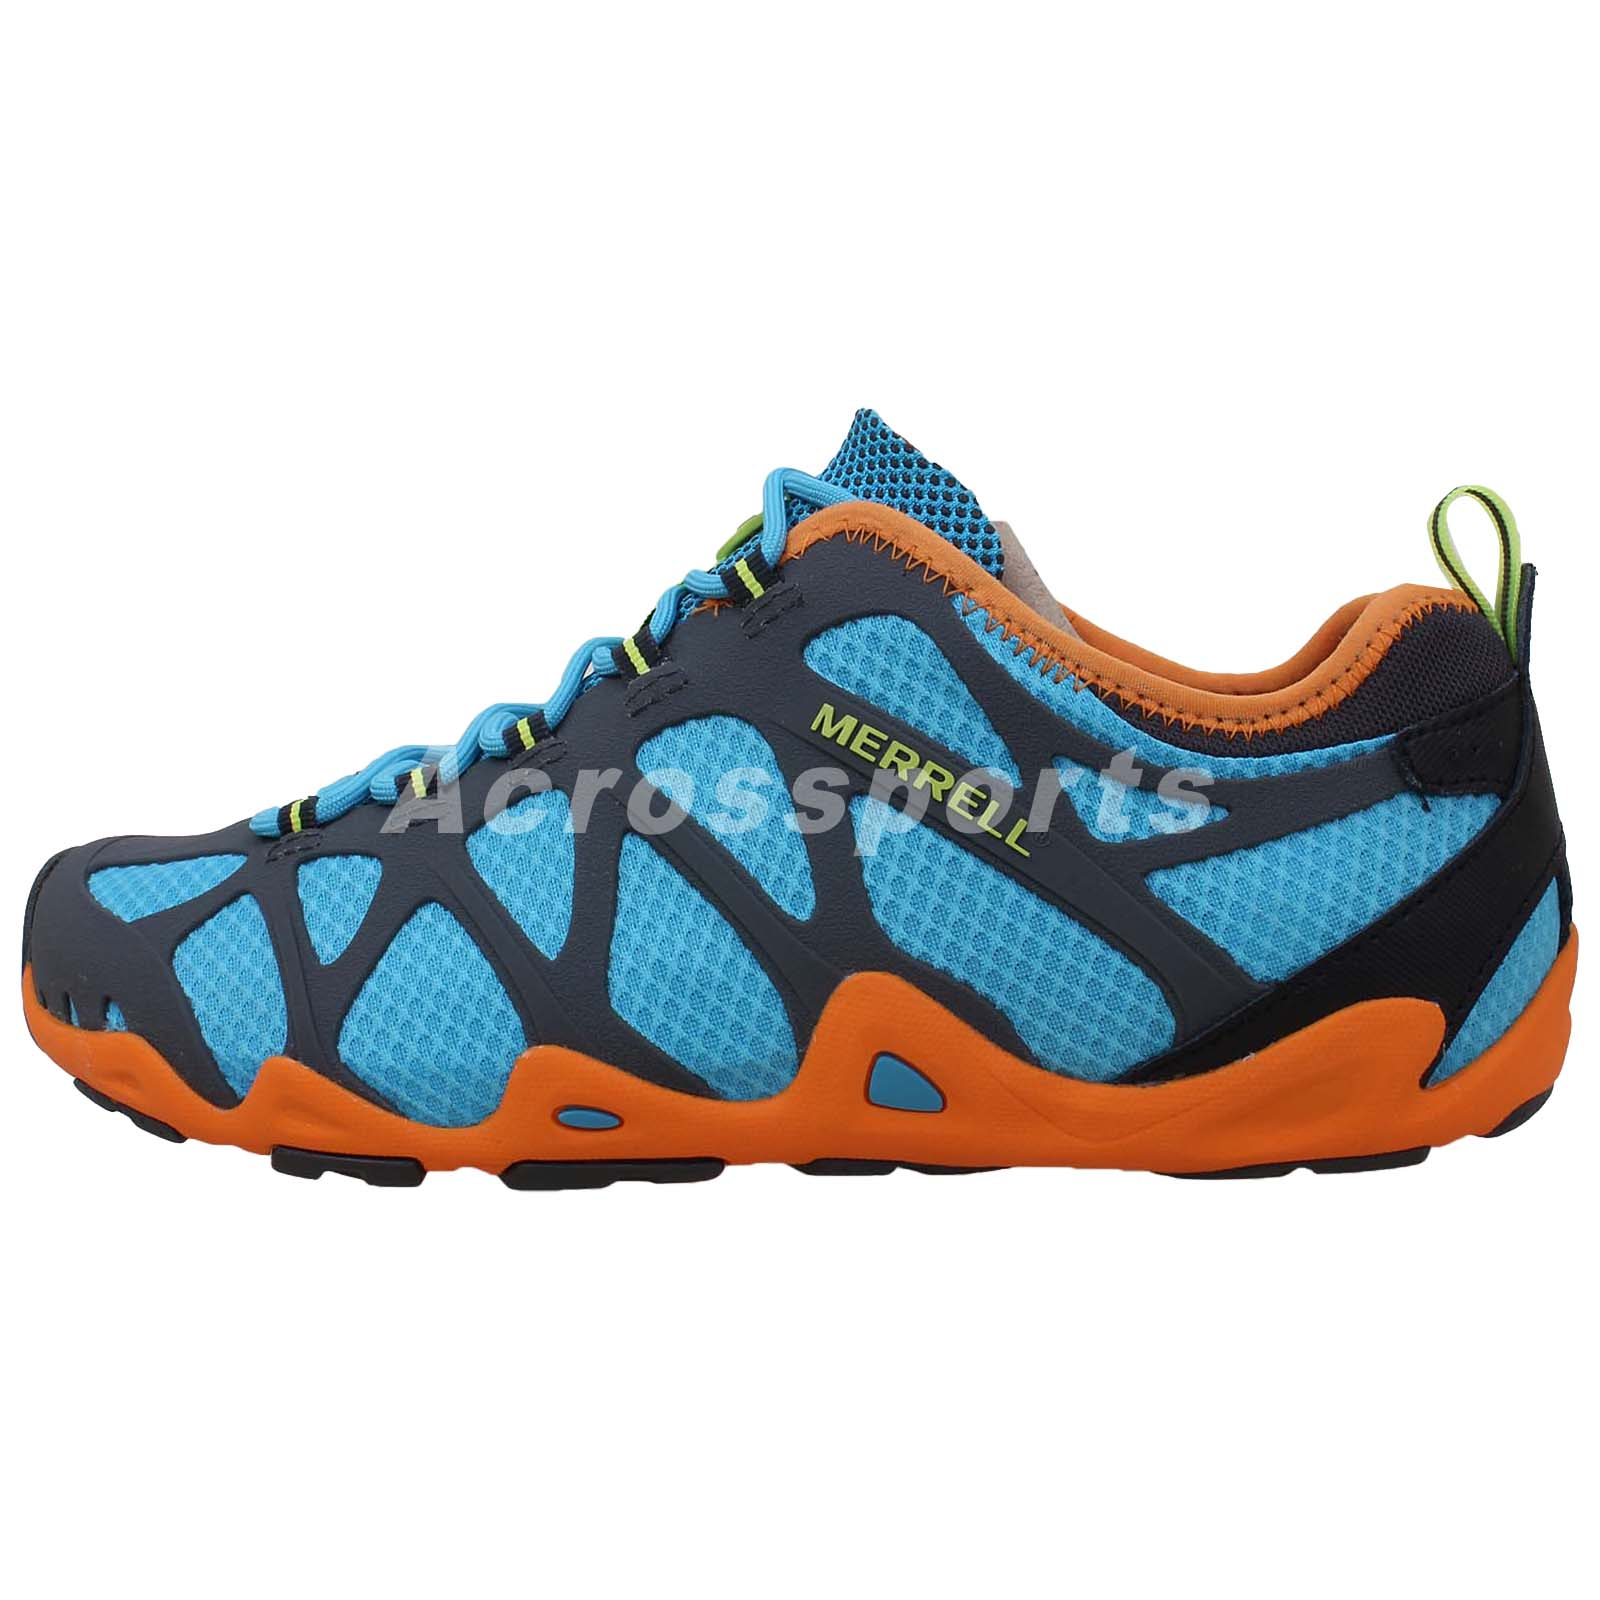 Merrell Aquaterra Blue Orange 2014 Mens Outdoors Hiking